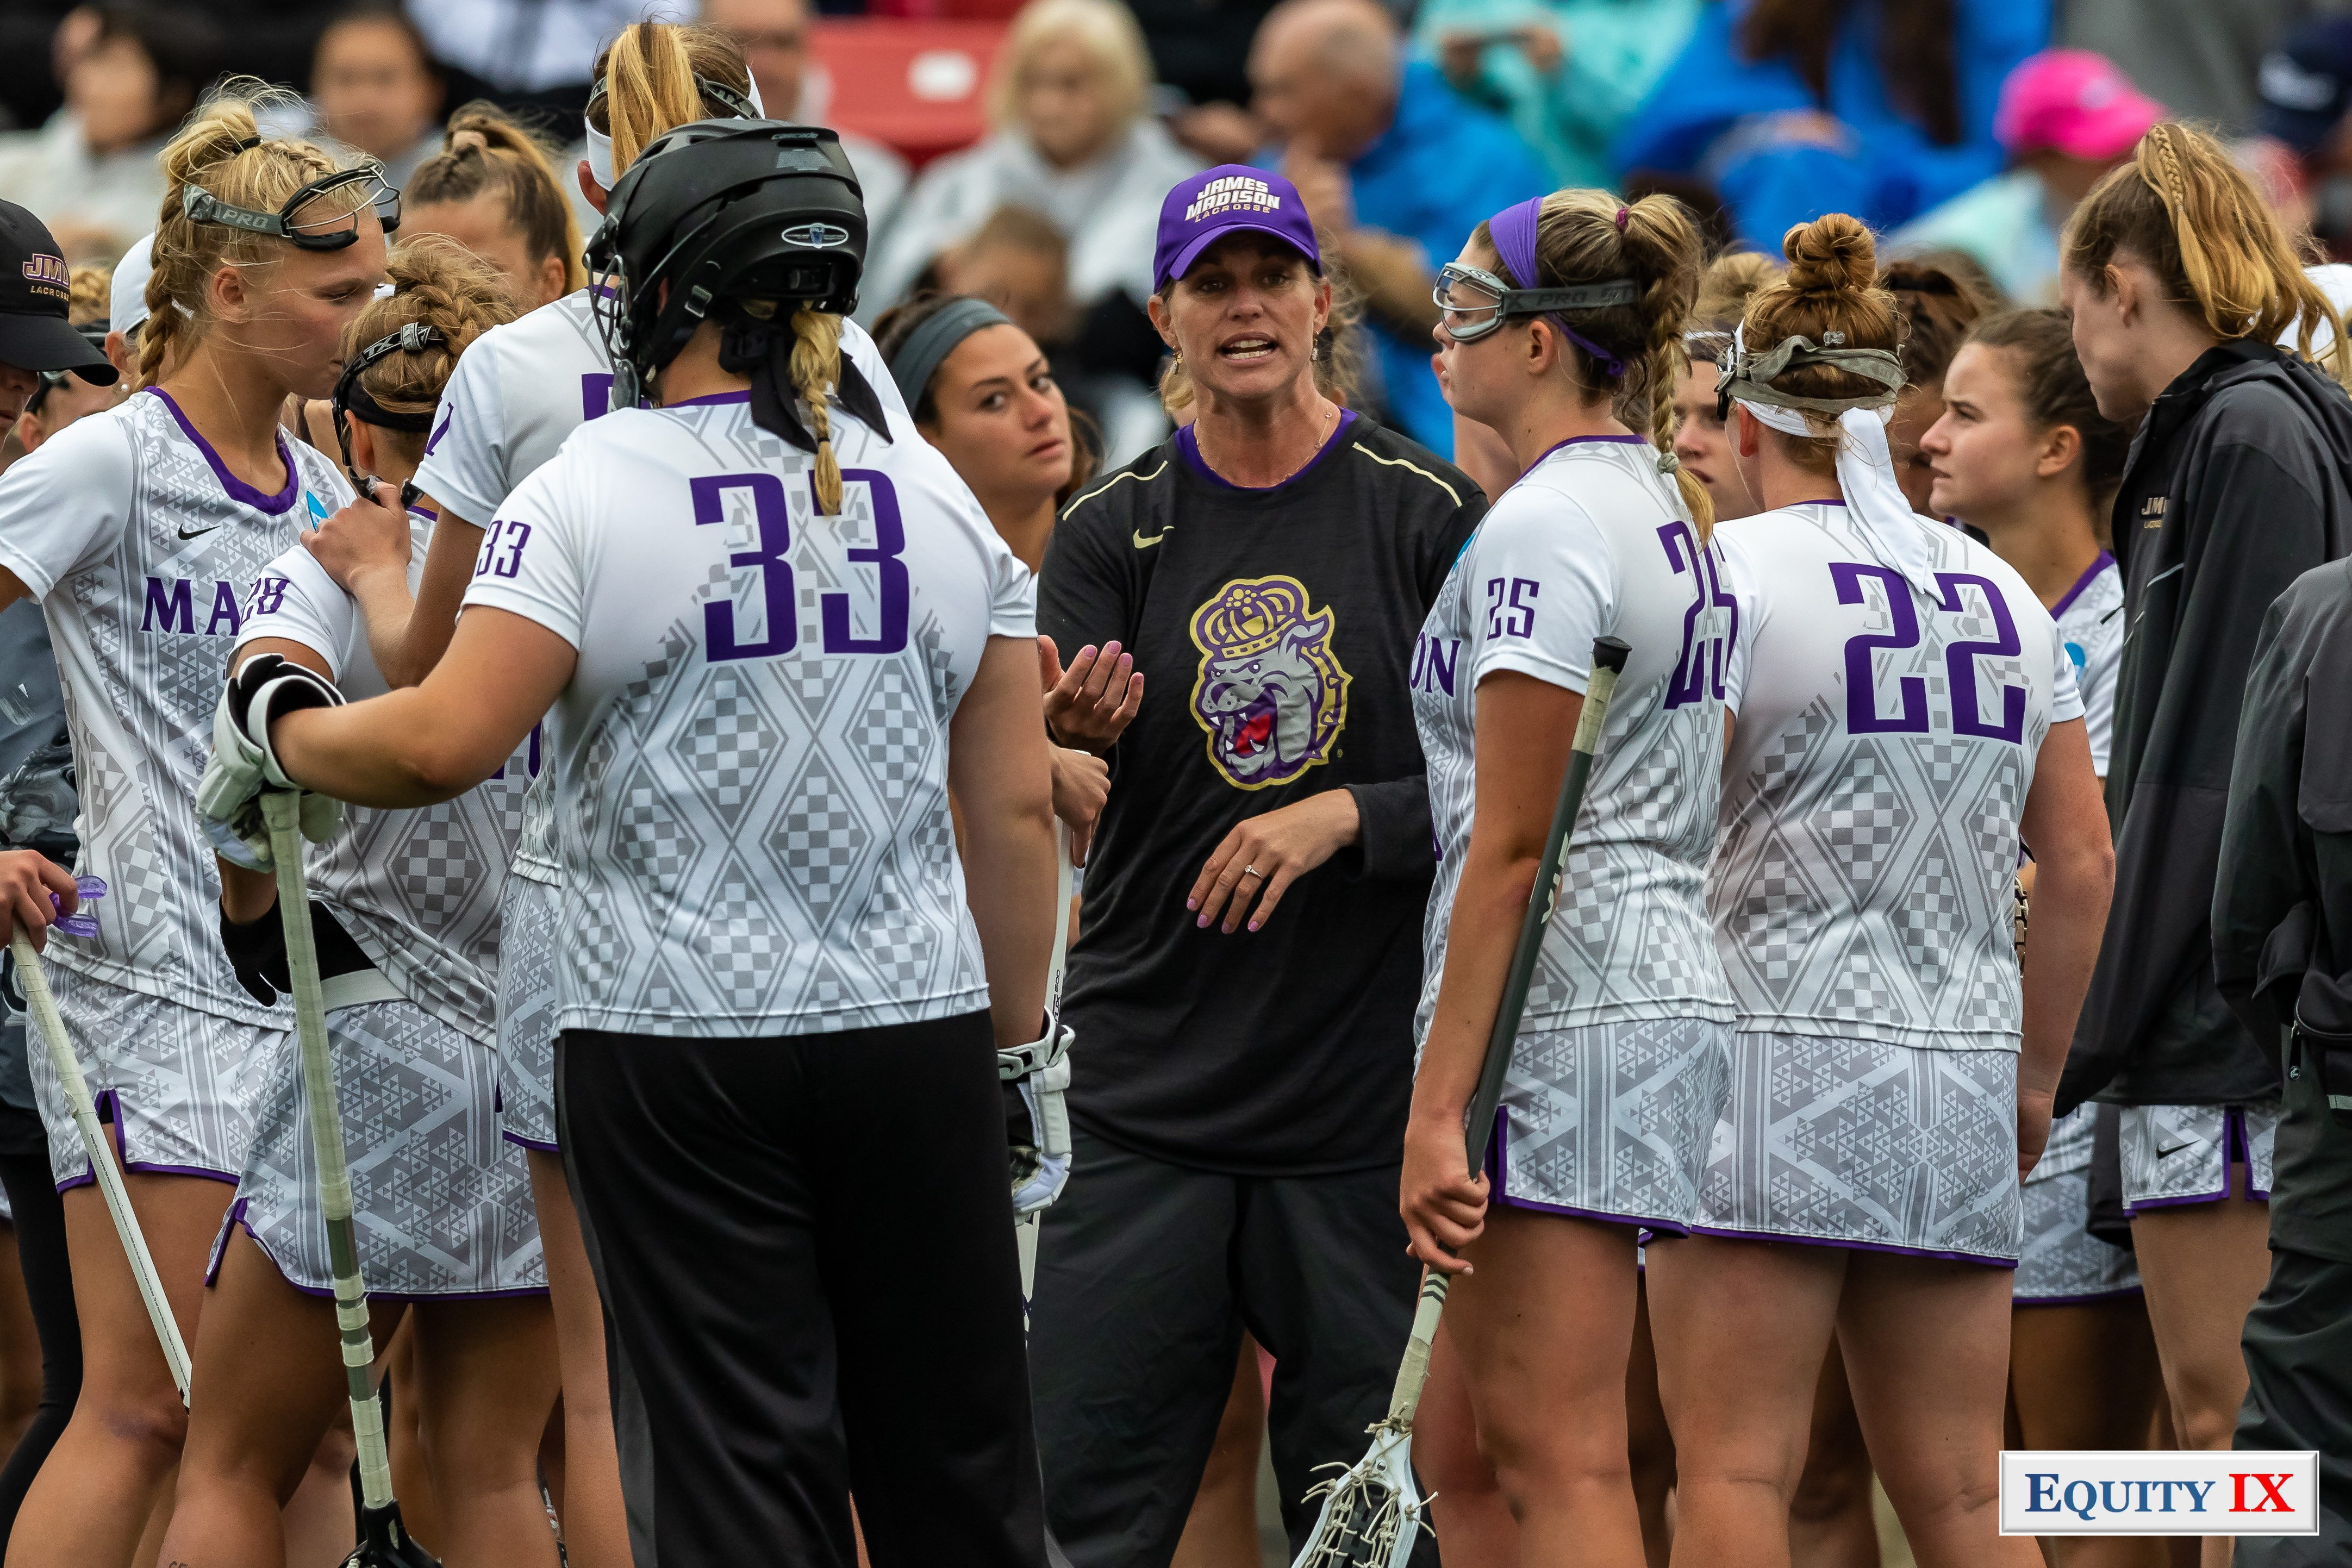 JMU Head Coach Shelley Klaes-Bawcombe speaks passionately to her team during a time out in a huddle featuring top players #33 goalie Molly Dougherty wearing black helmet, #25 Haley Warden and other female lacrosse players - Coach is wearing purple James Madison Lacrosse baseball hat with Duke sweatshirt - 2018 NCAA Women's Lacrosse Champions © Equity IX - SportsOgram - Leigh Ernst Friestedt